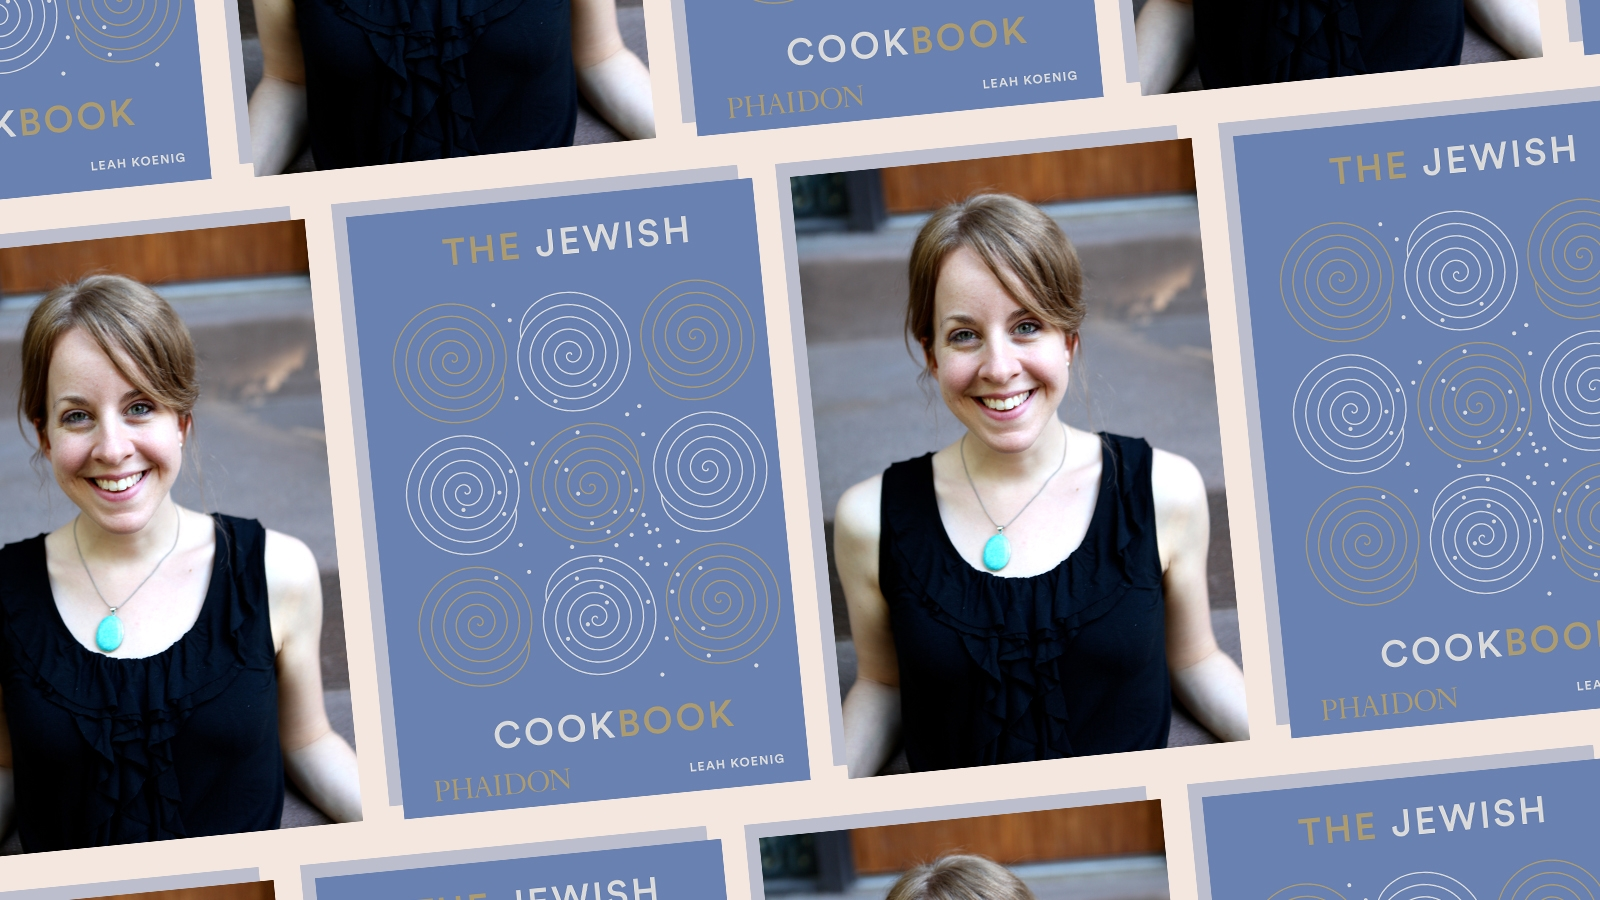 Leah Koenig on How She Got Centuries of Jewish Home Recipes into 'The Jewish Cookbook'